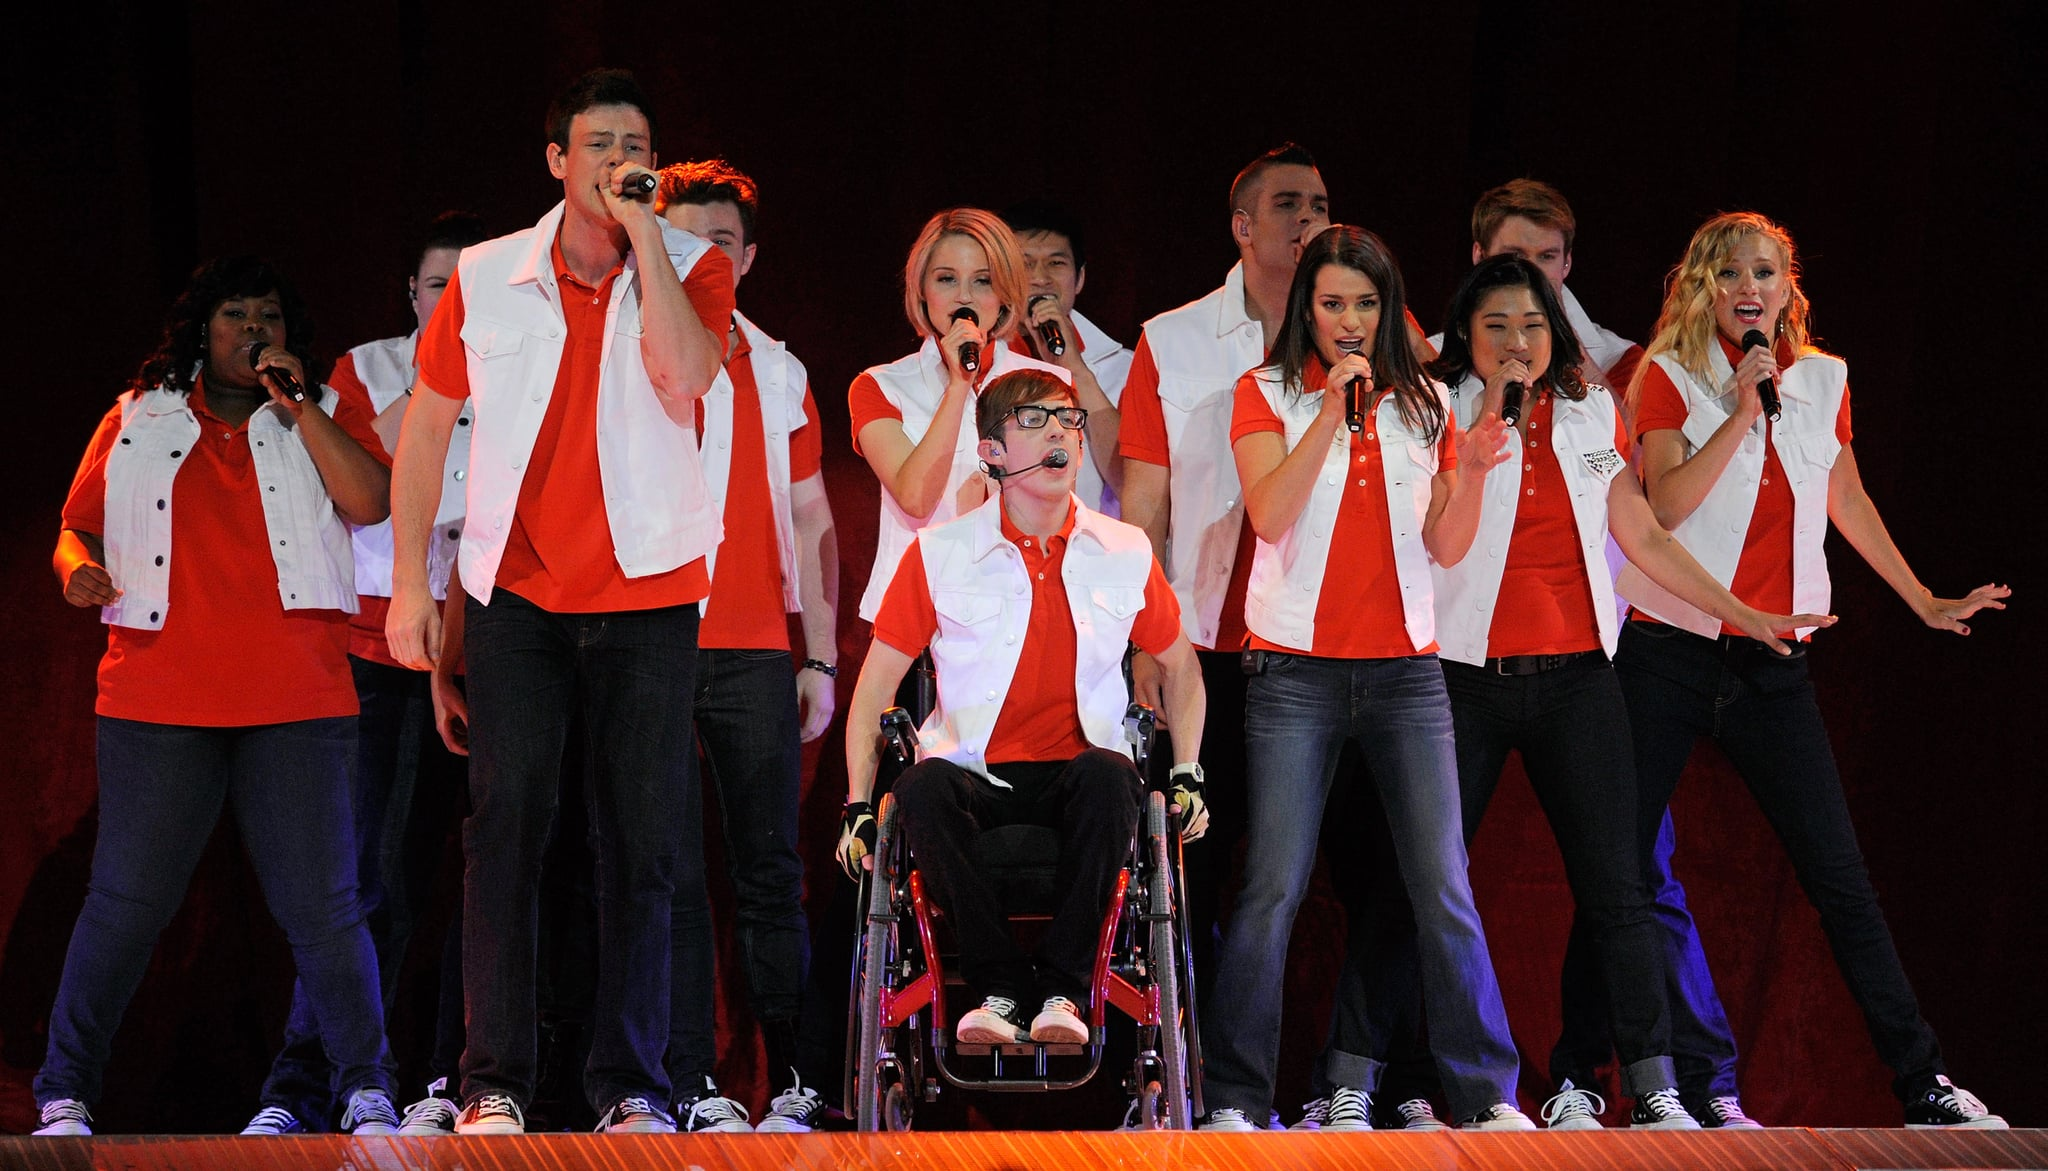 LAS VEGAS, NV - MAY 21:  Cast members including, front (L-R) Amber Riley, Cory Monteith, Kevin McHale, Lea Michele, Jenna Ushkowitz and Heather Morris perform during the kickoff of the Glee Live! In Concert! tour at the Mandalay Bay Events Center May 21, 2011 in Las Vegas, Nevada.  (Photo by Ethan Miller/Getty Images)